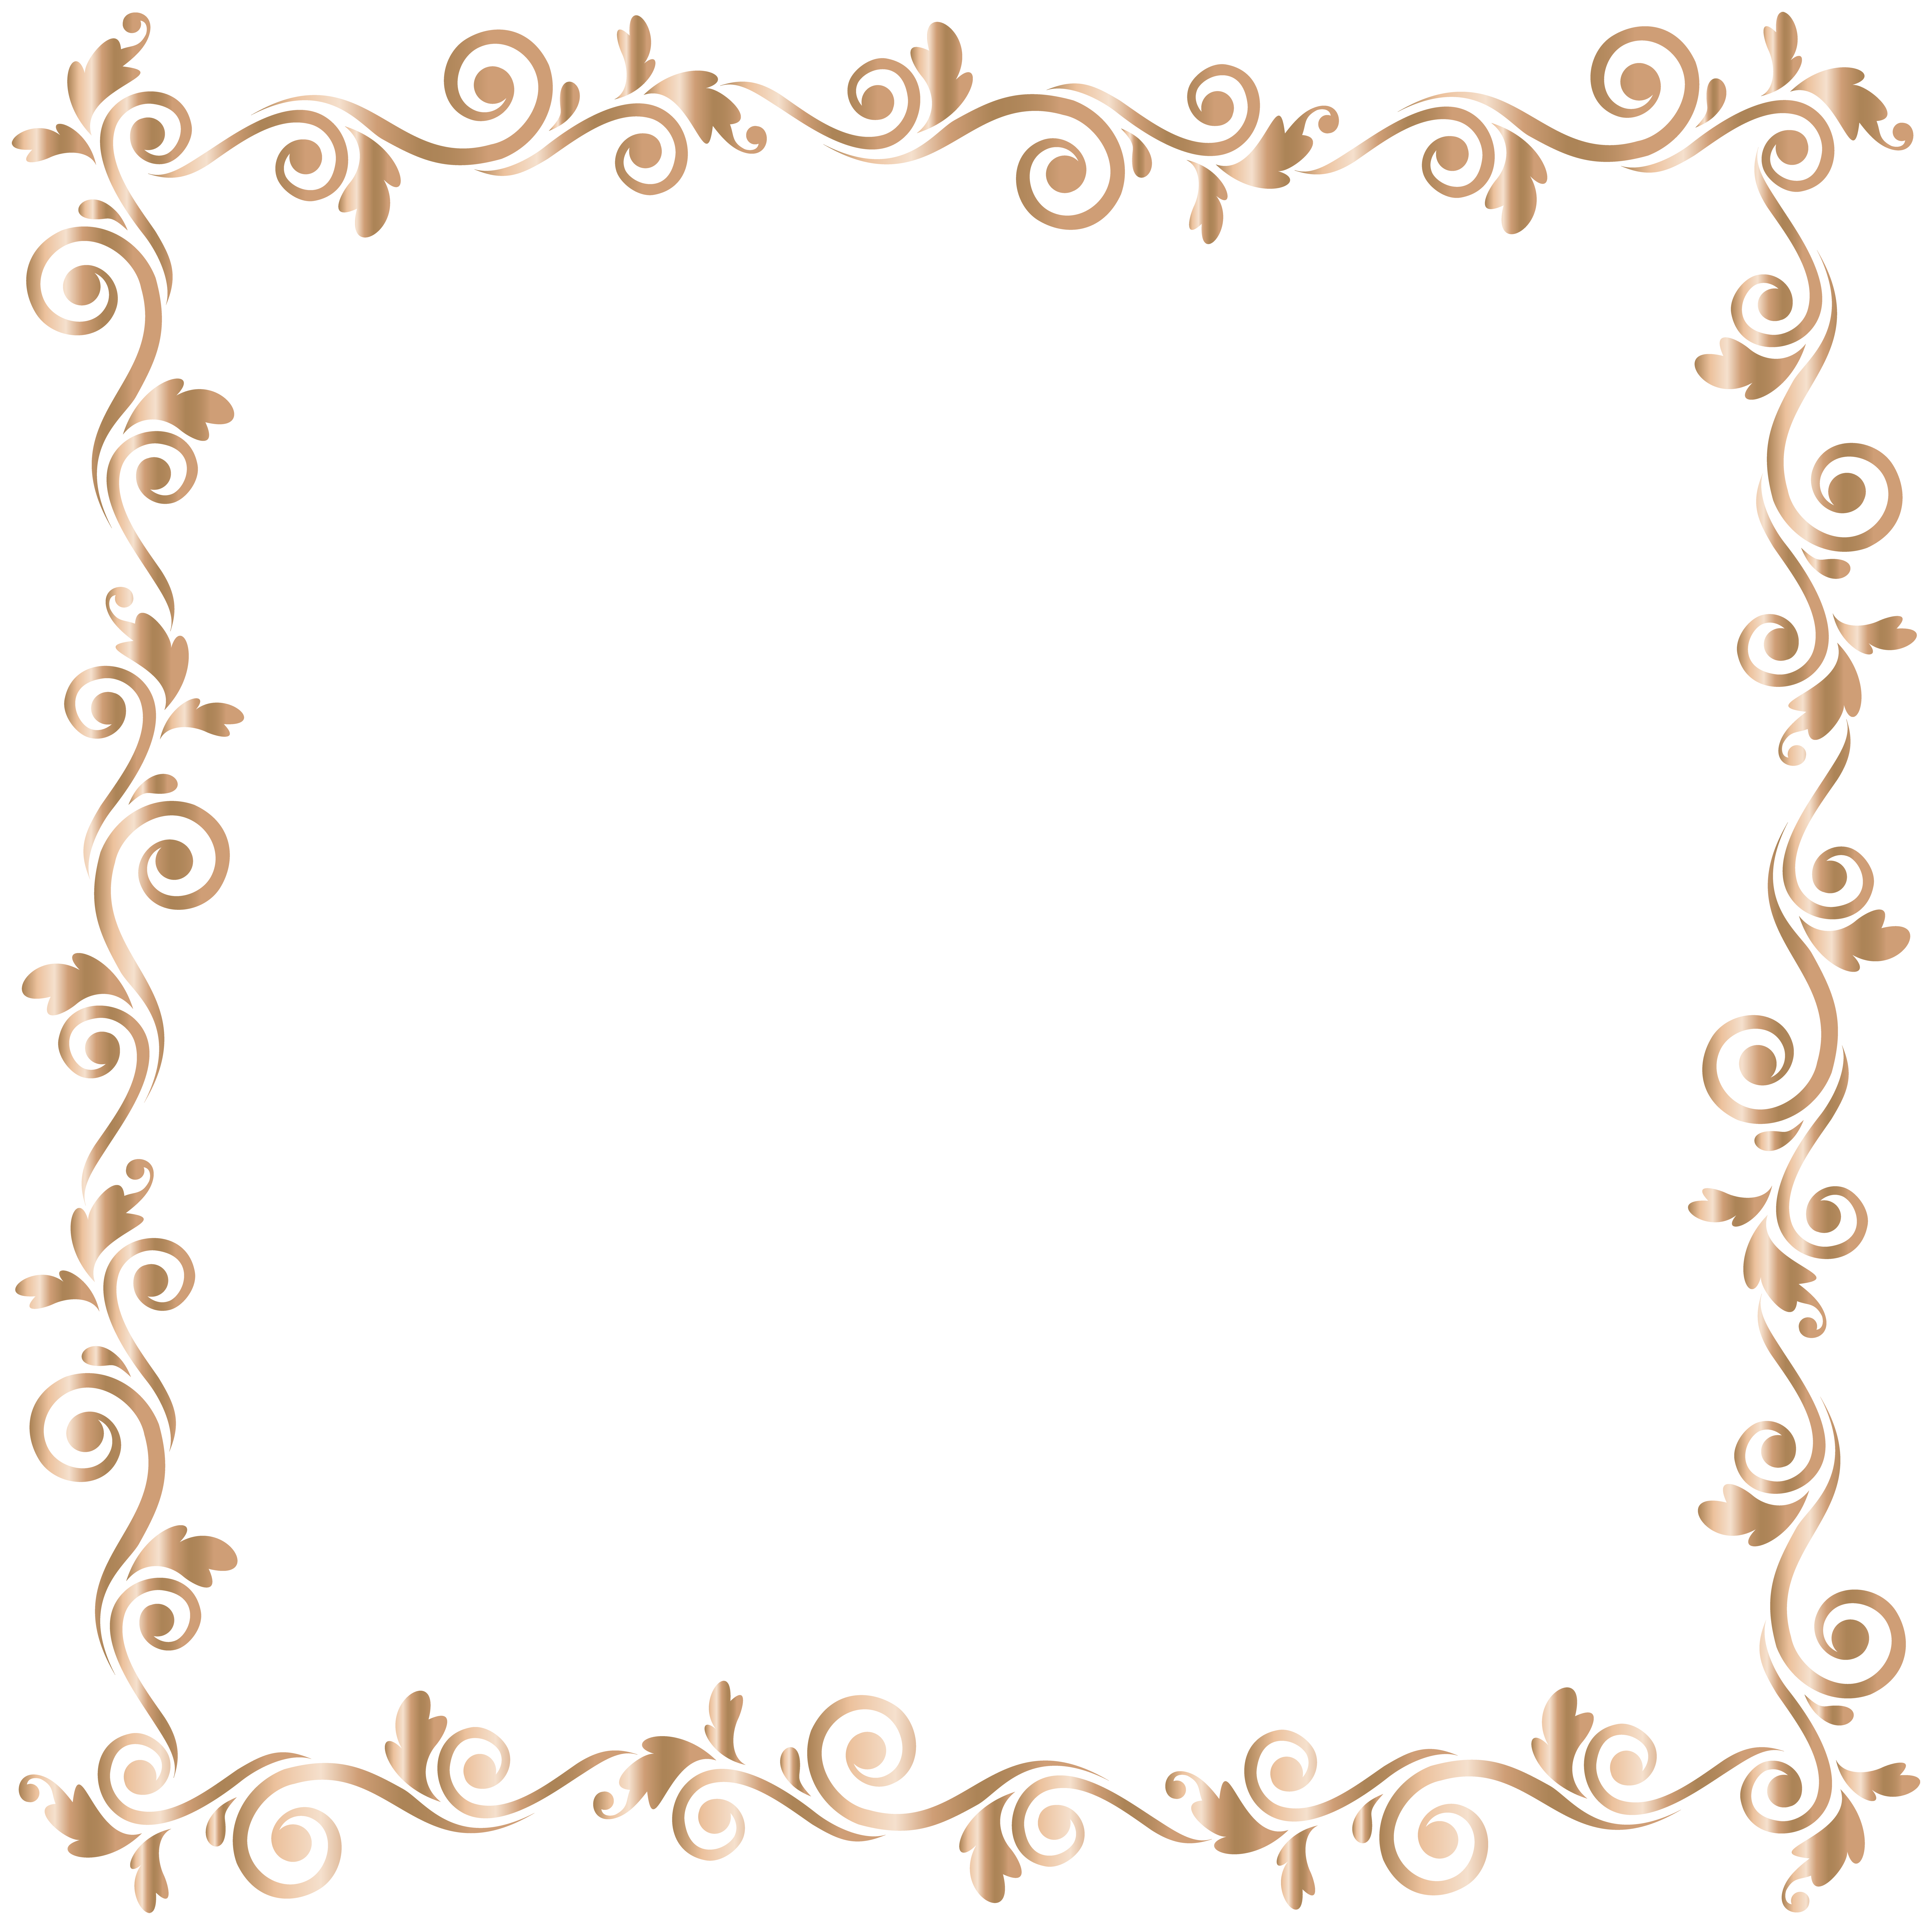 8000x7970 Border Frame Gold Png Clip Art Imageu200b Gallery Yopriceville